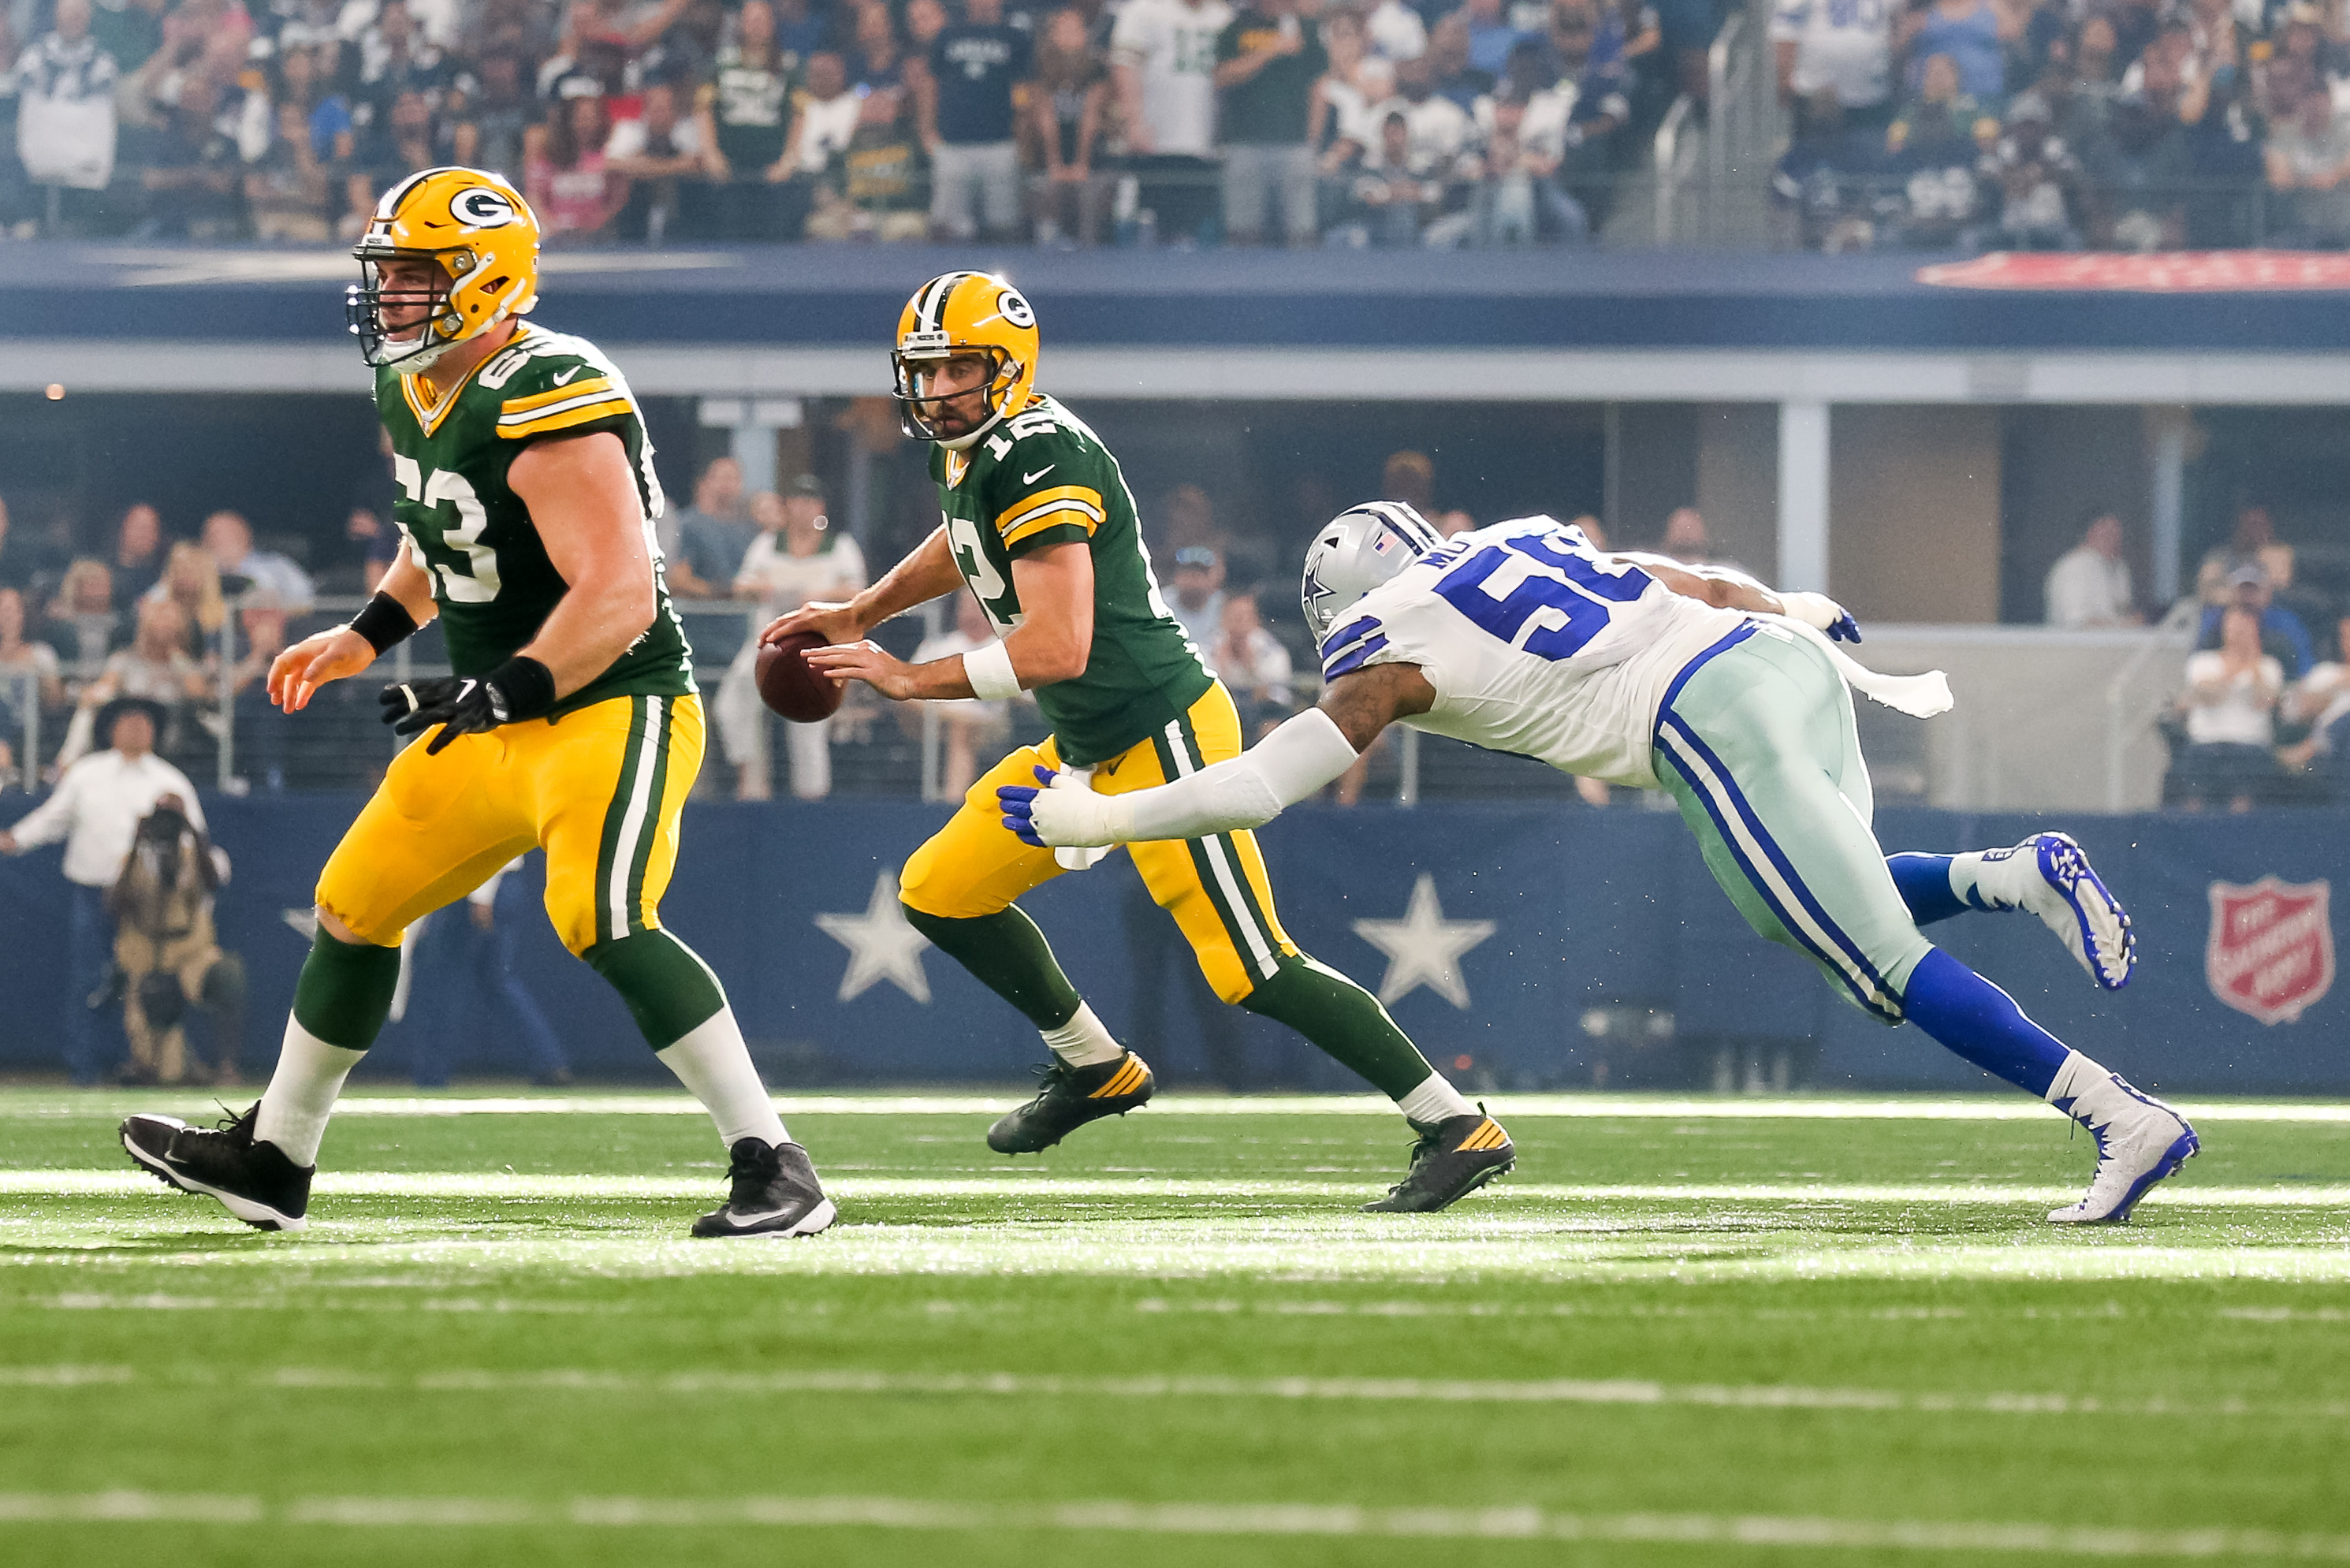 NFL: OCT 08 Packers at Cowboys